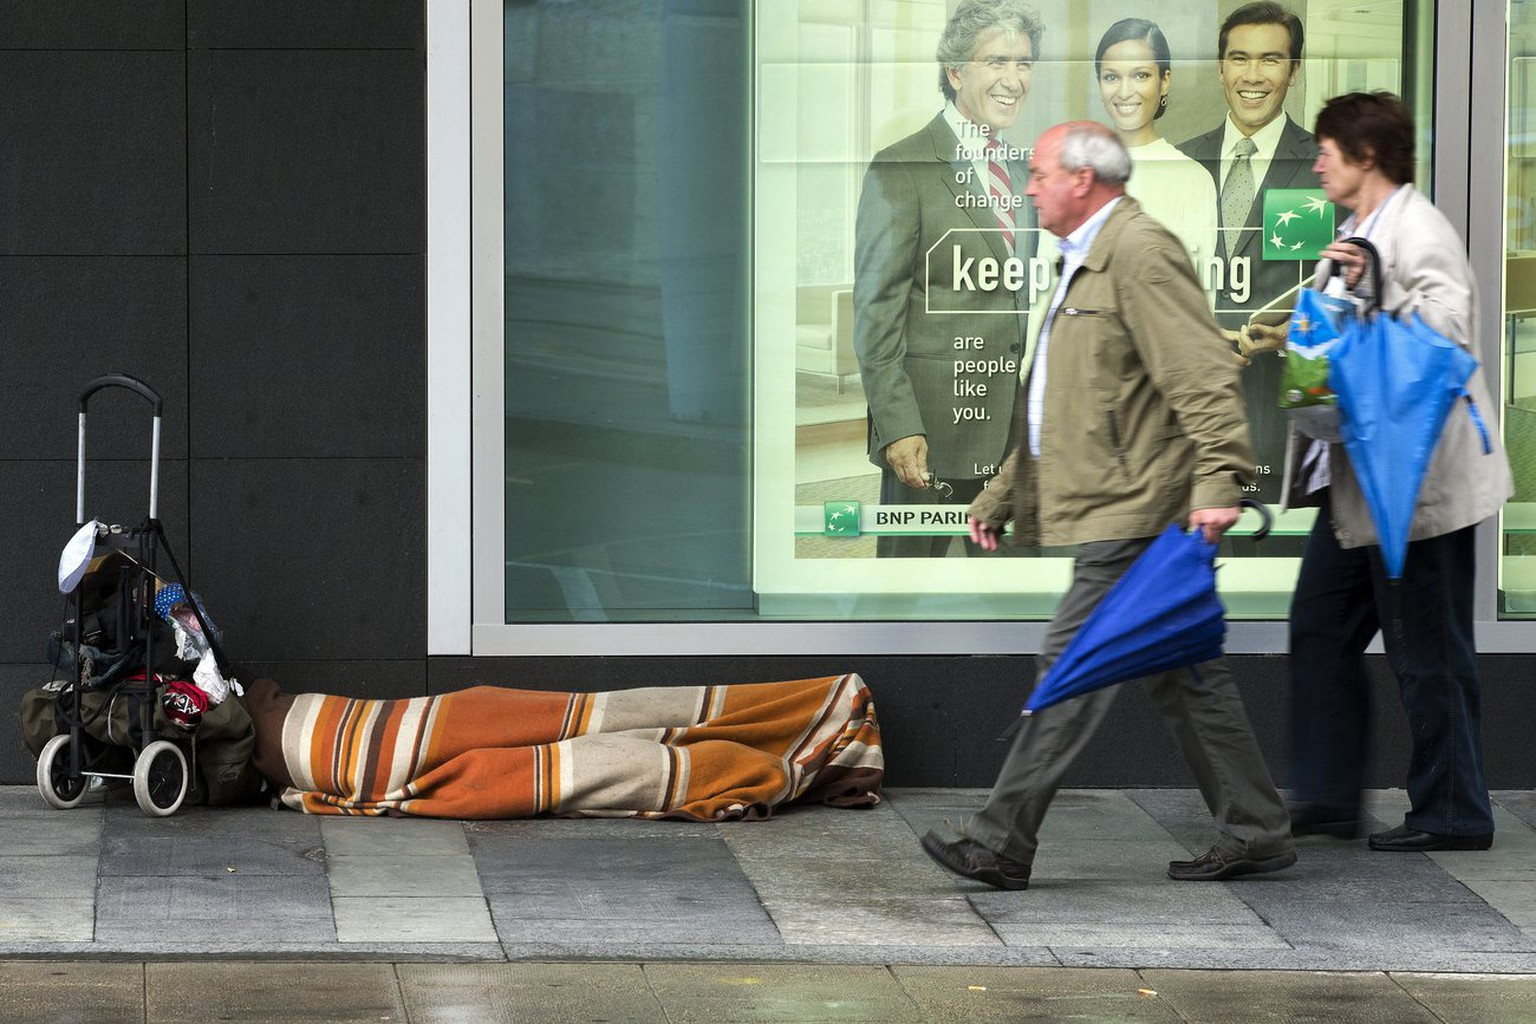 Two persons passe near a homeless which sleeps warp in a carpet on the sidewalk, in Geneva, Switzerland, Saturday, June 29, 2013. (KEYSTONE/Salvatore Di Nolfi)